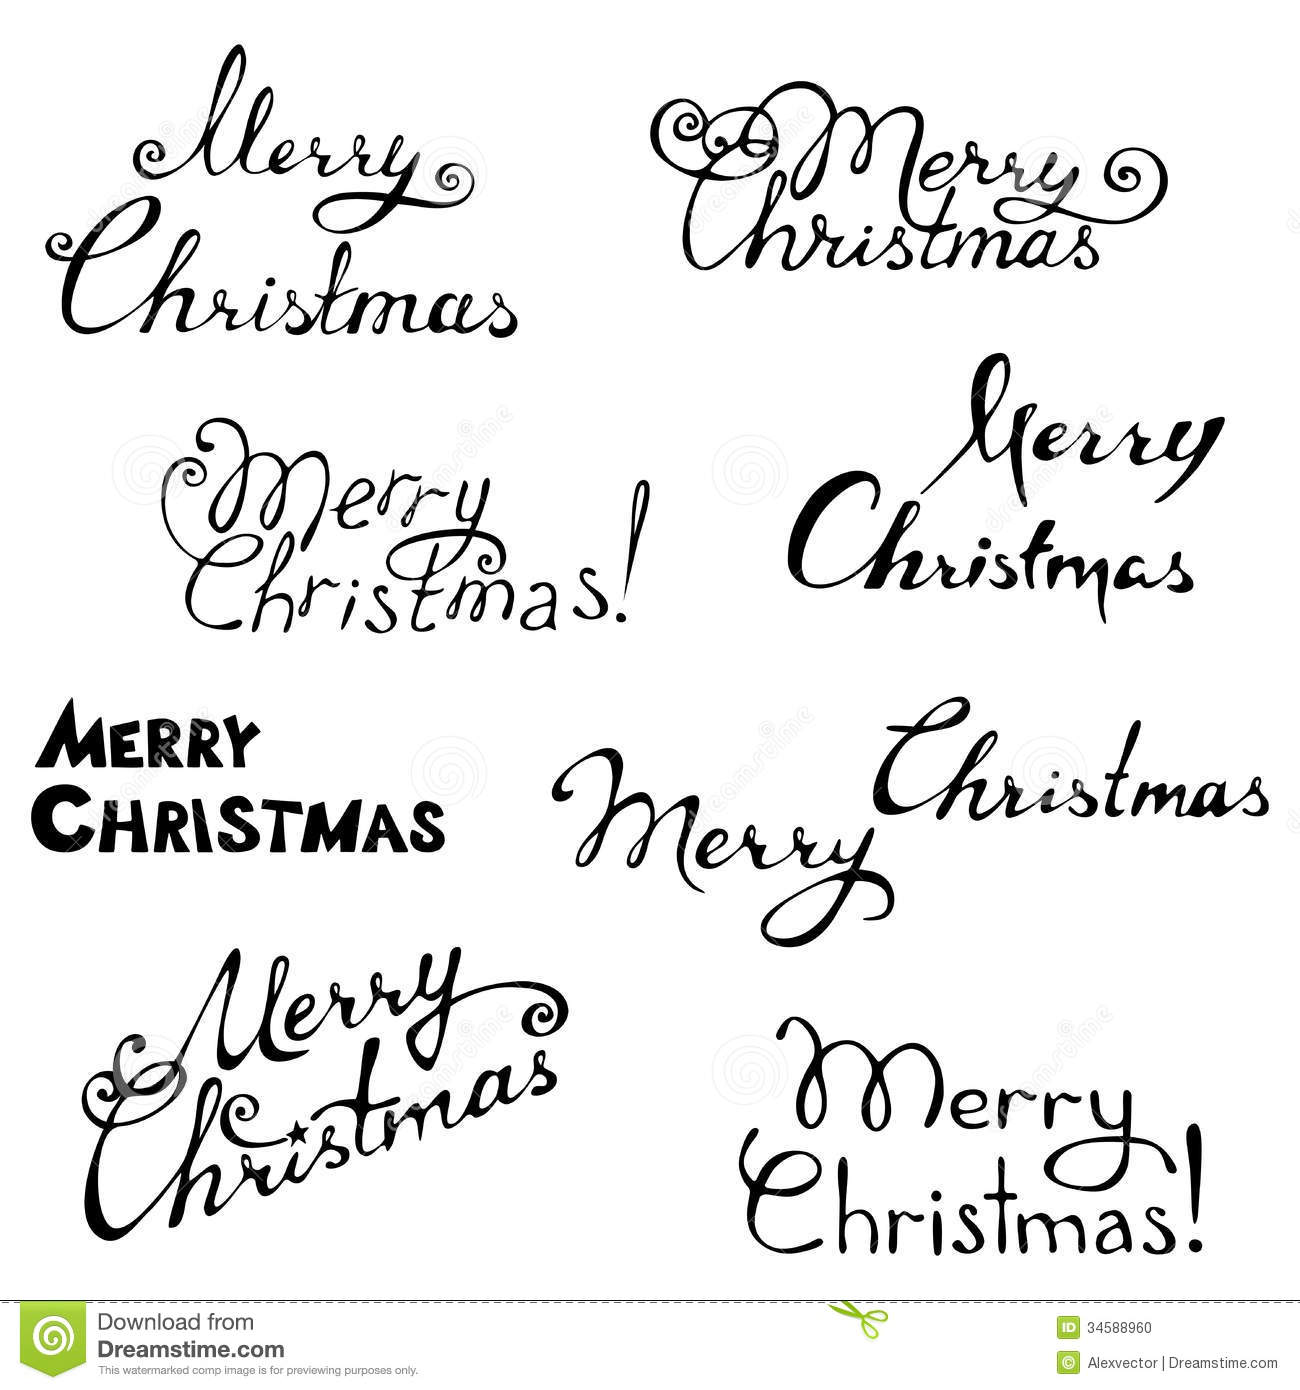 Merry Christmas. Stock Photo - Image: 34588960